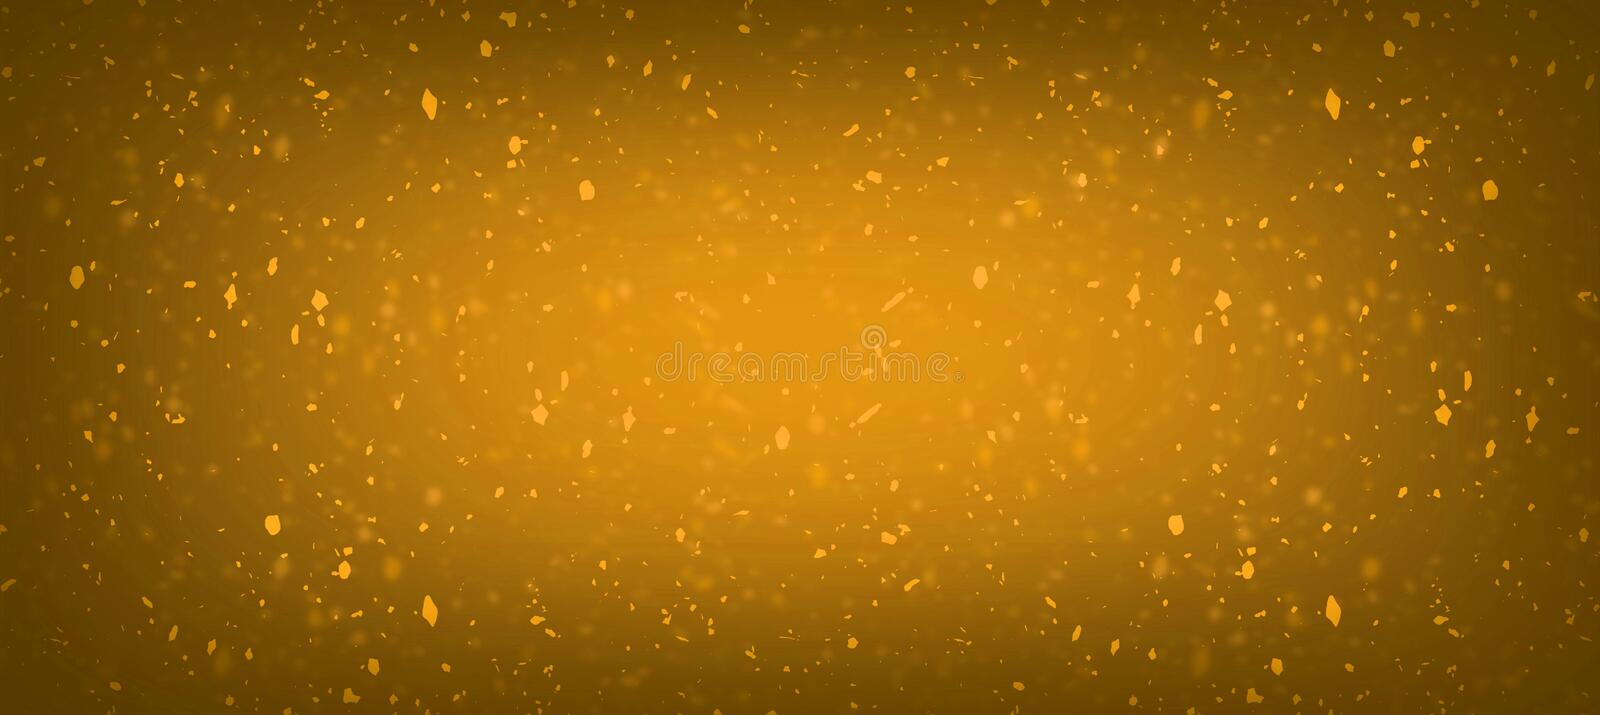 Abstract honey orange blur glitter confetti golden bokeh splash lights with sparkle dust composition background for celebration, p royalty free stock photos